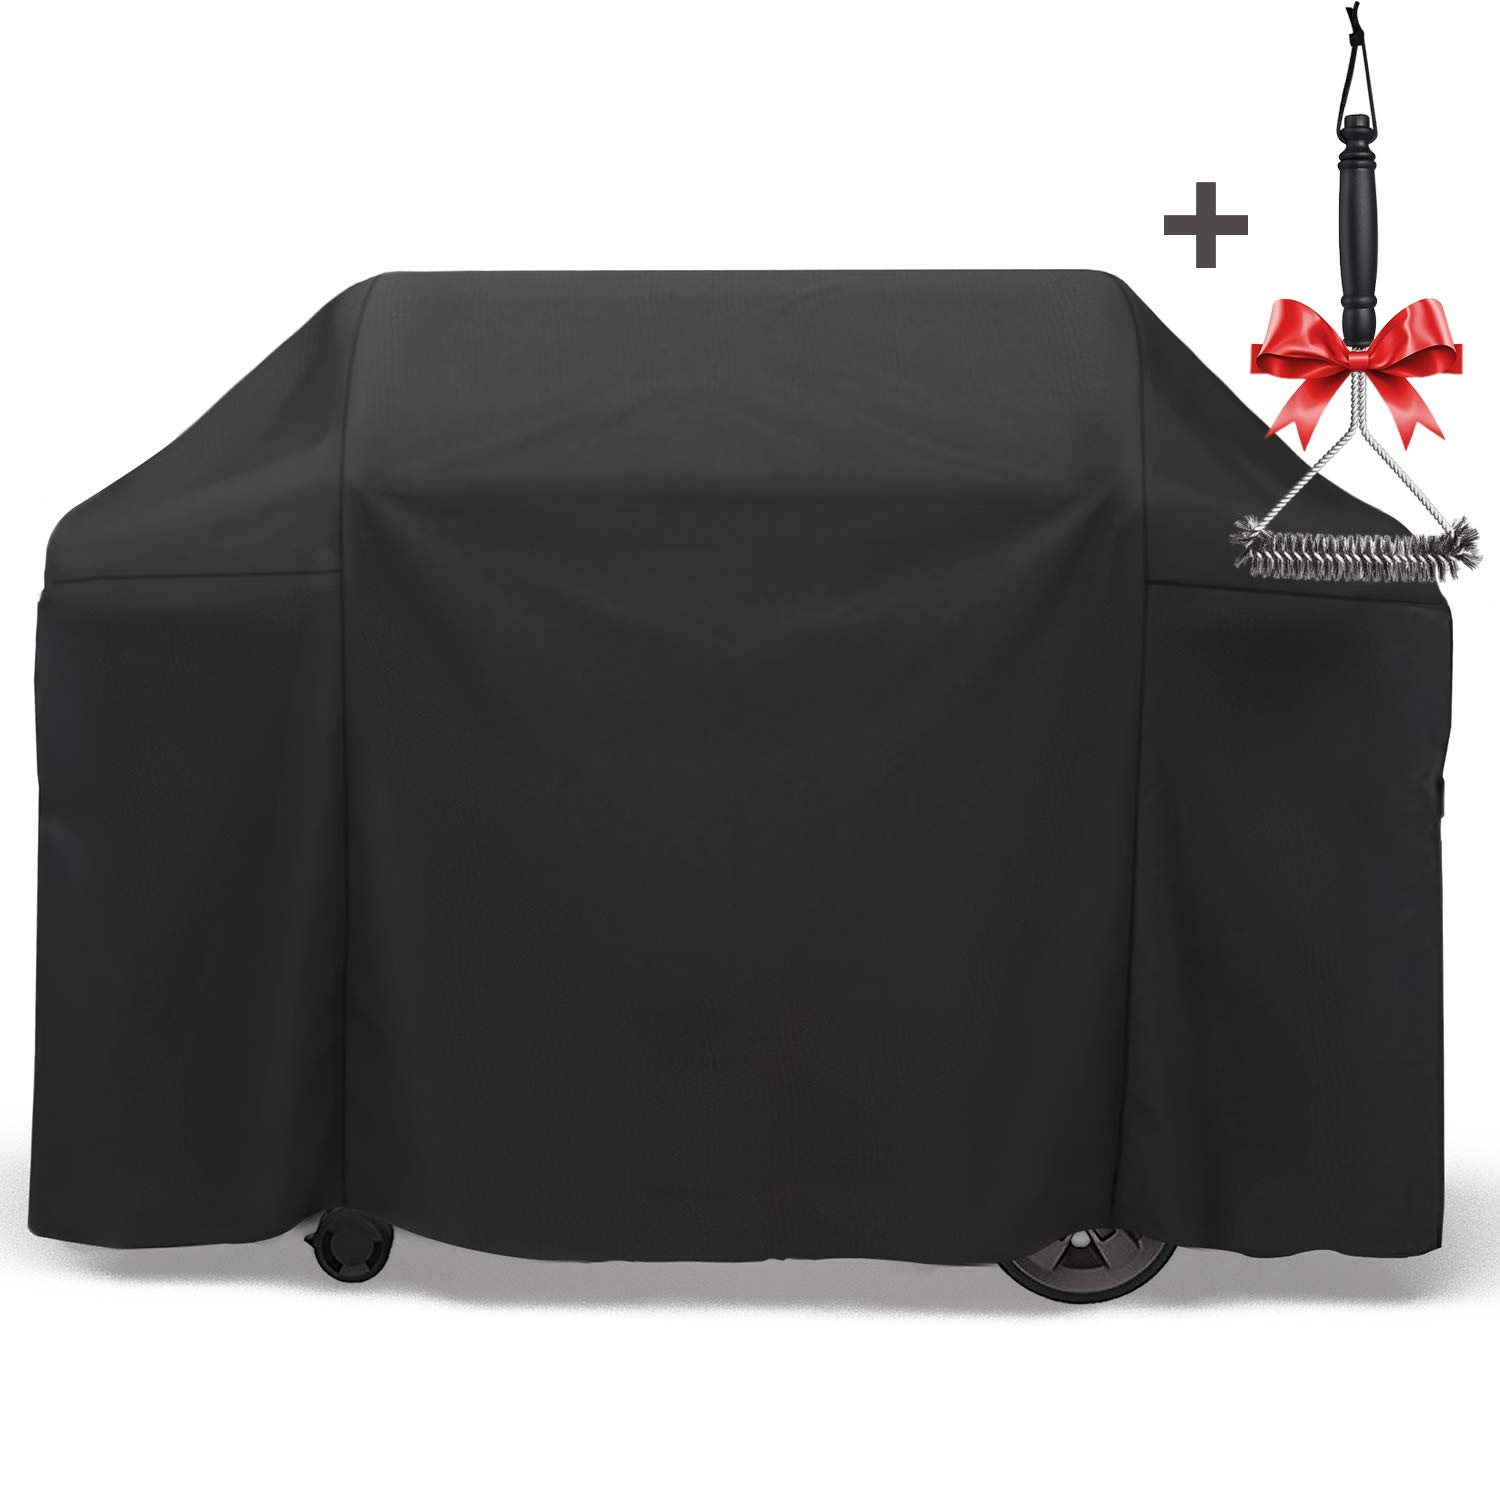 SHINESTAR 65 Inch Durable BBQ Cover, Thick PVC Oxford, Waterproof and Windproof, Universal for 4-5 Burner Grill